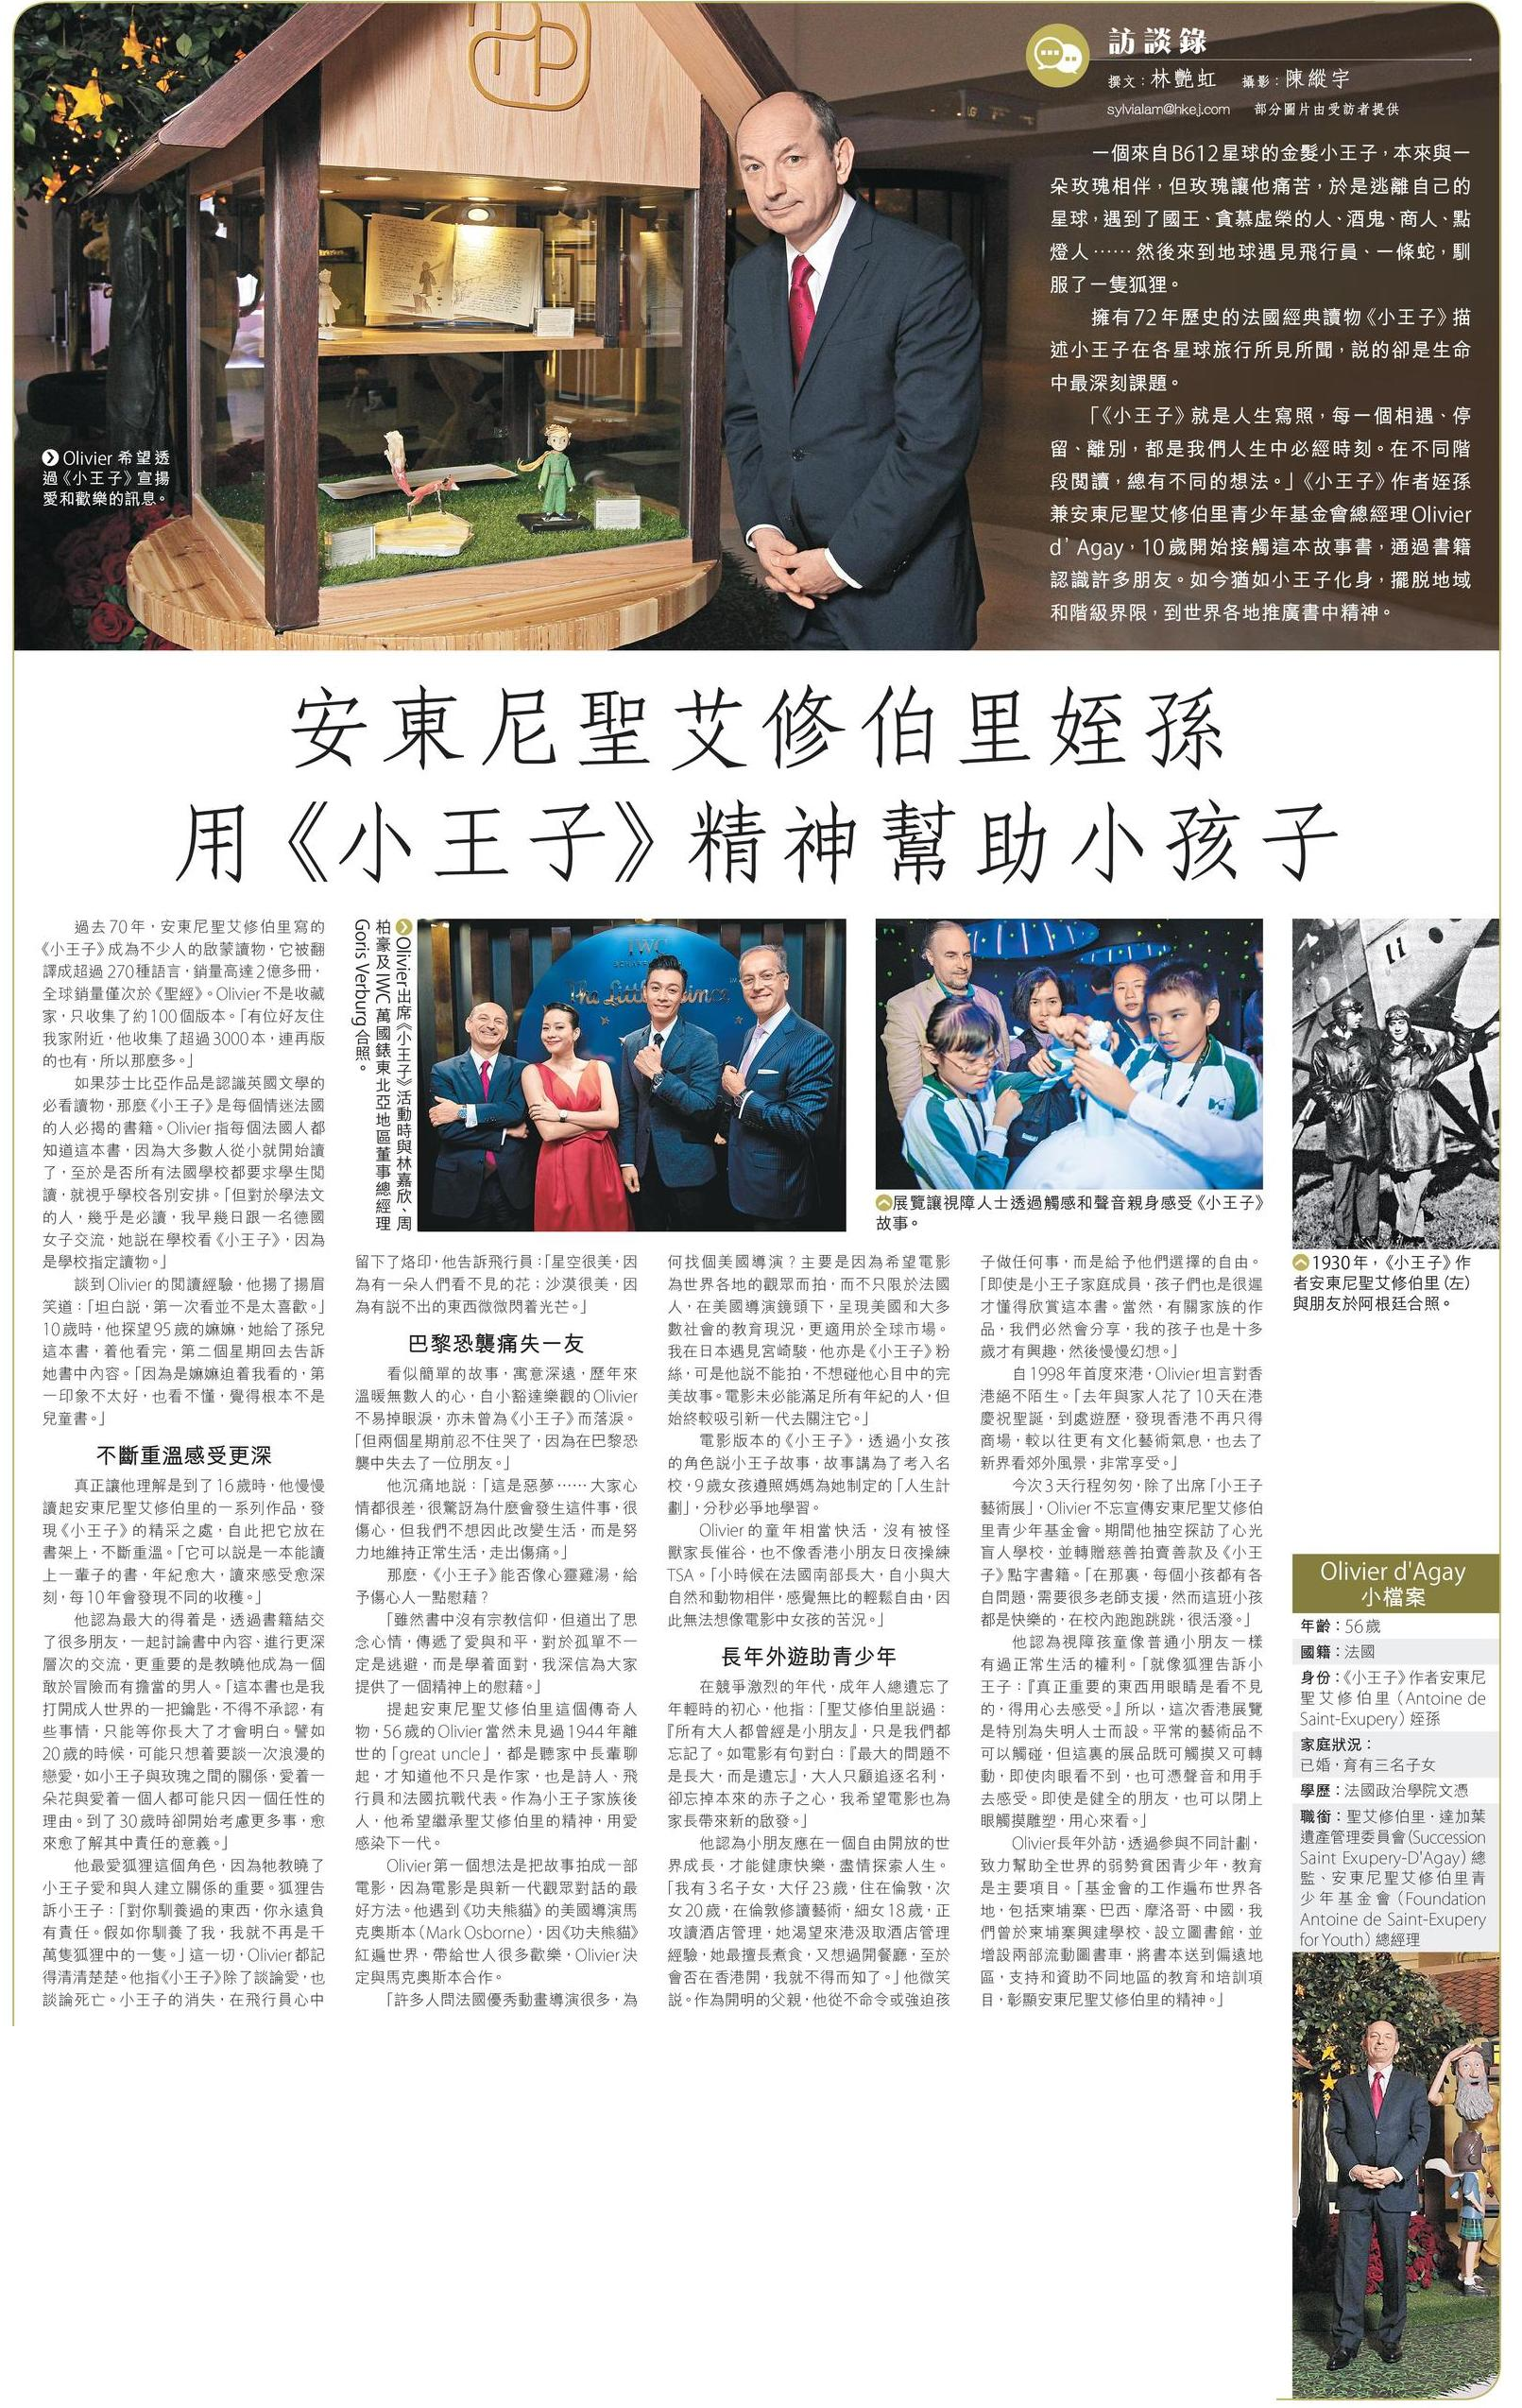 20151215_Hong Kong Economic Journal_C03_1_201512153107019.JPG